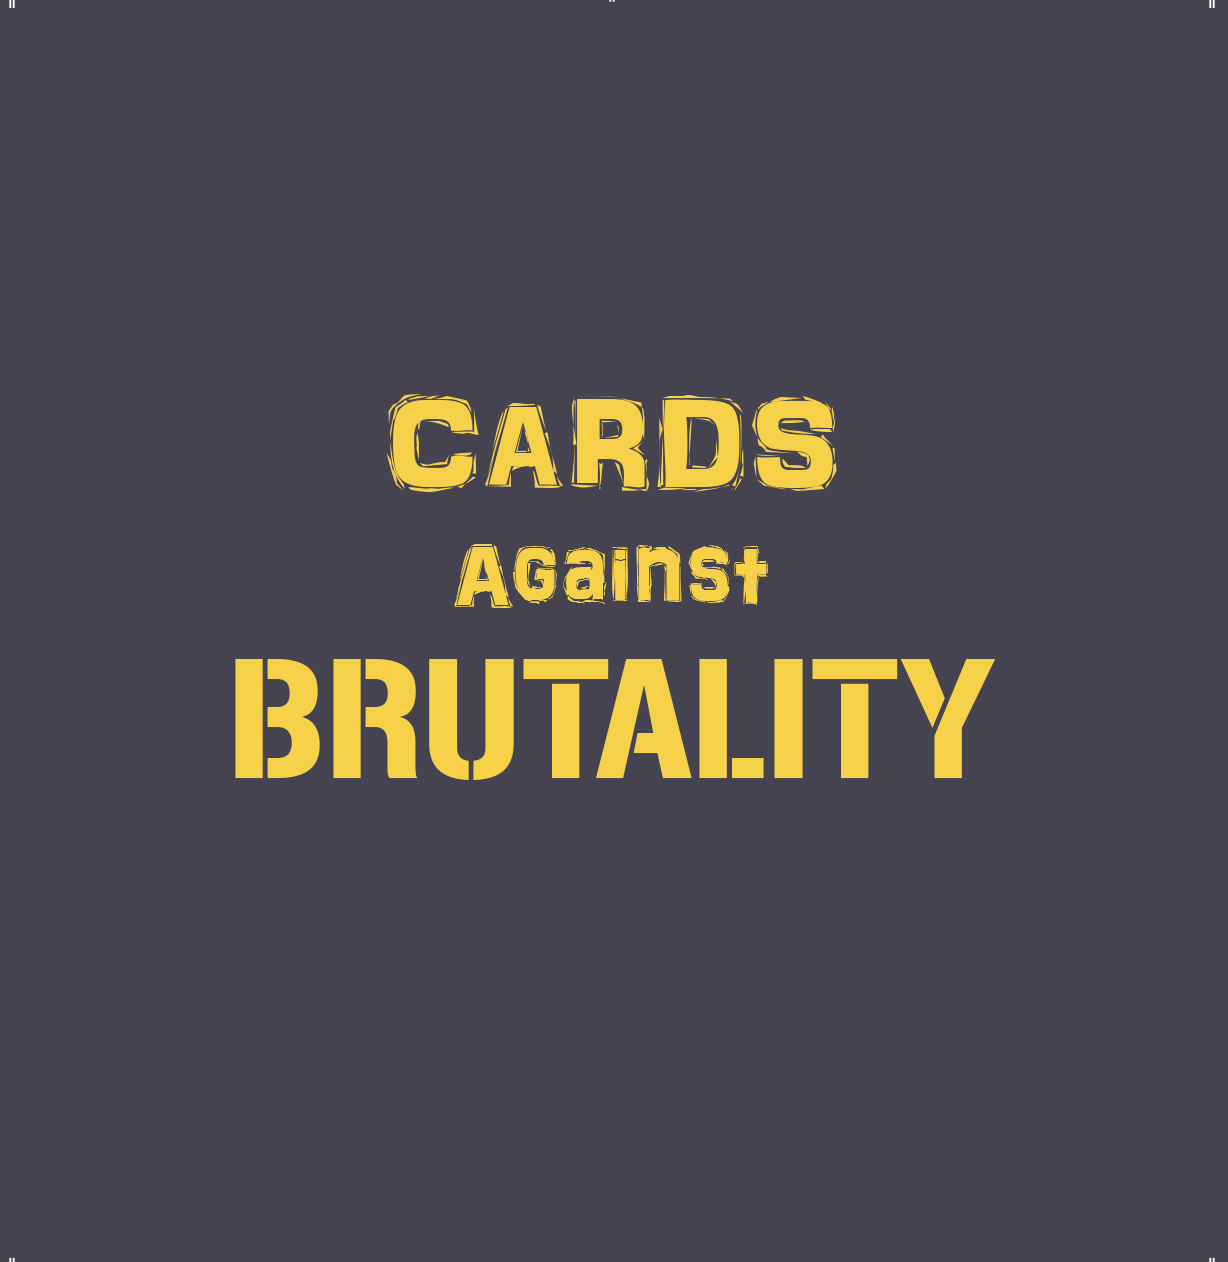 cards against brutality_cover.jpg